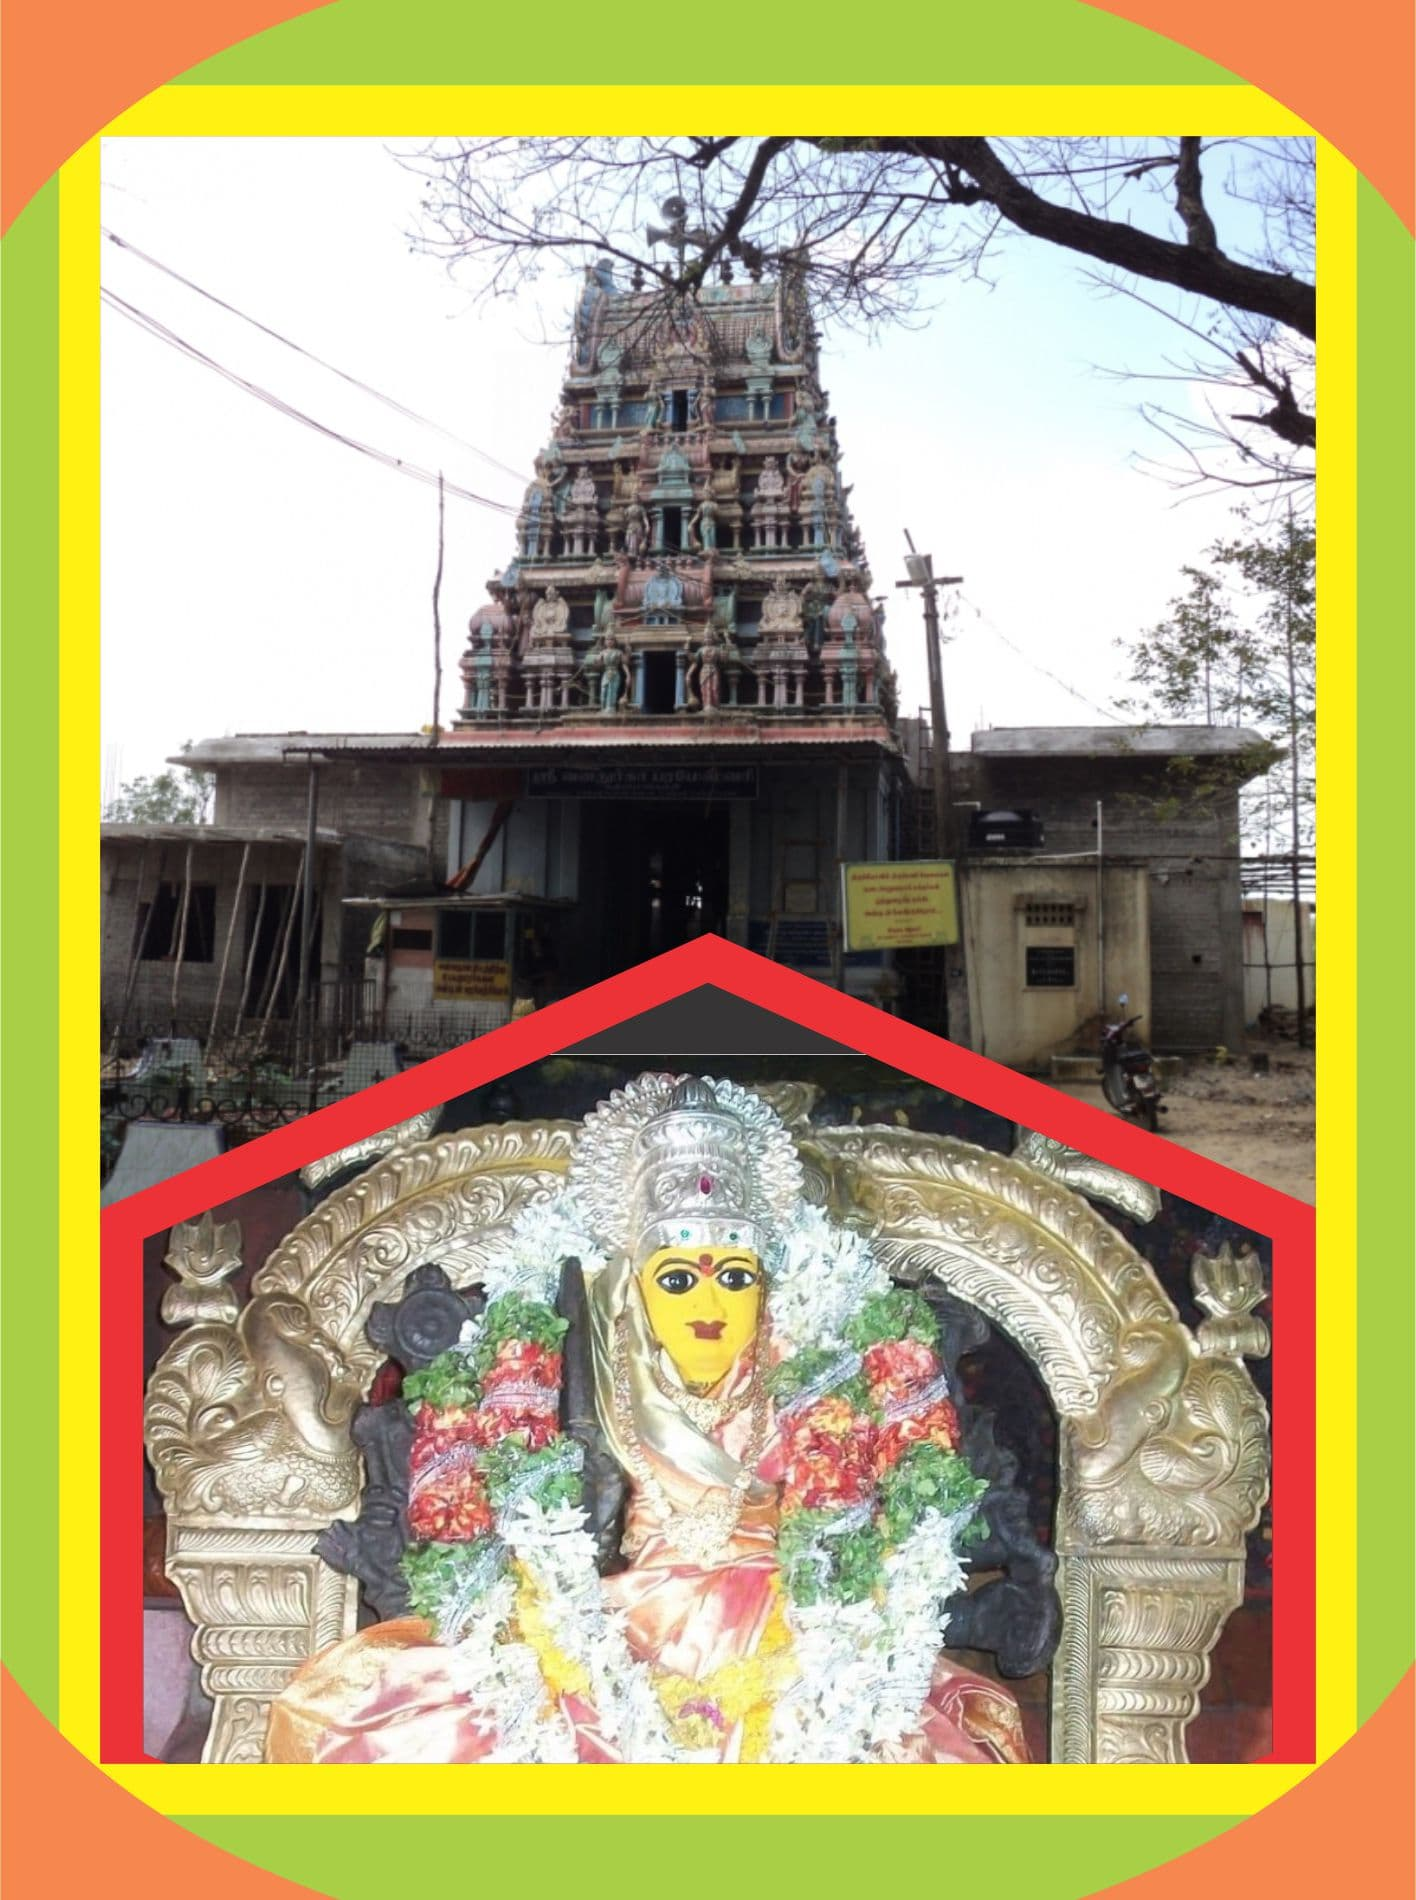 Kathiramangalam Vanadurga - Abishekam for Early Marriage